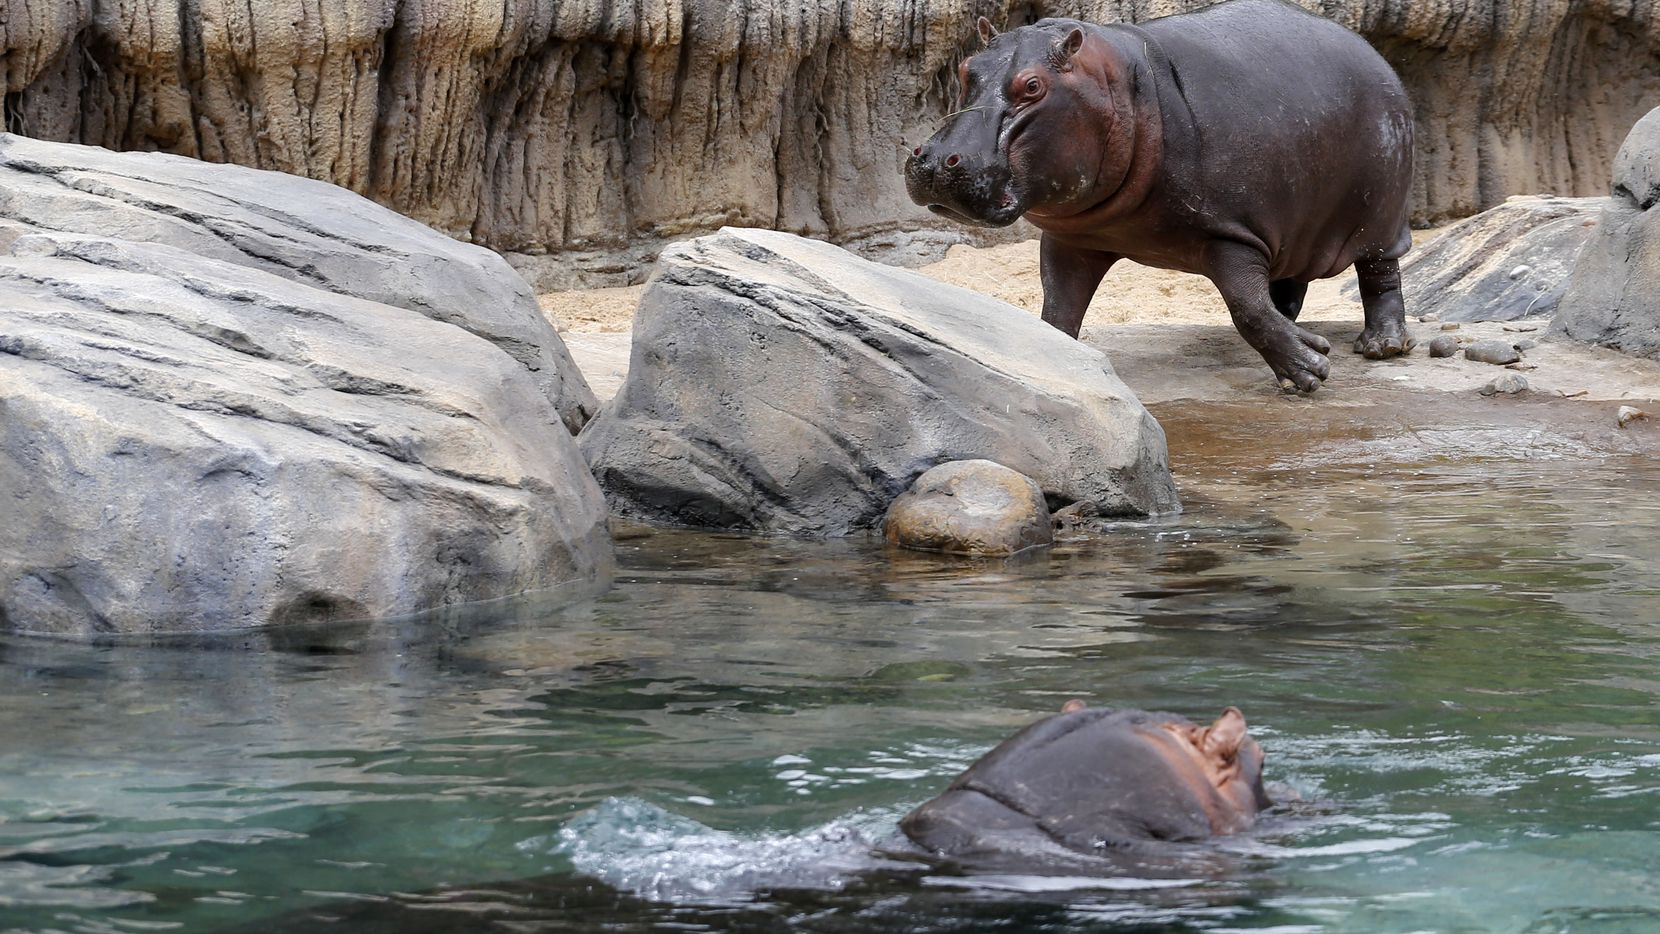 Boipelo runs towards the water to join Adhama during the grand opening of the Dallas Zoo's hippo exhibit in Dallas on Friday, April 28, 2017.